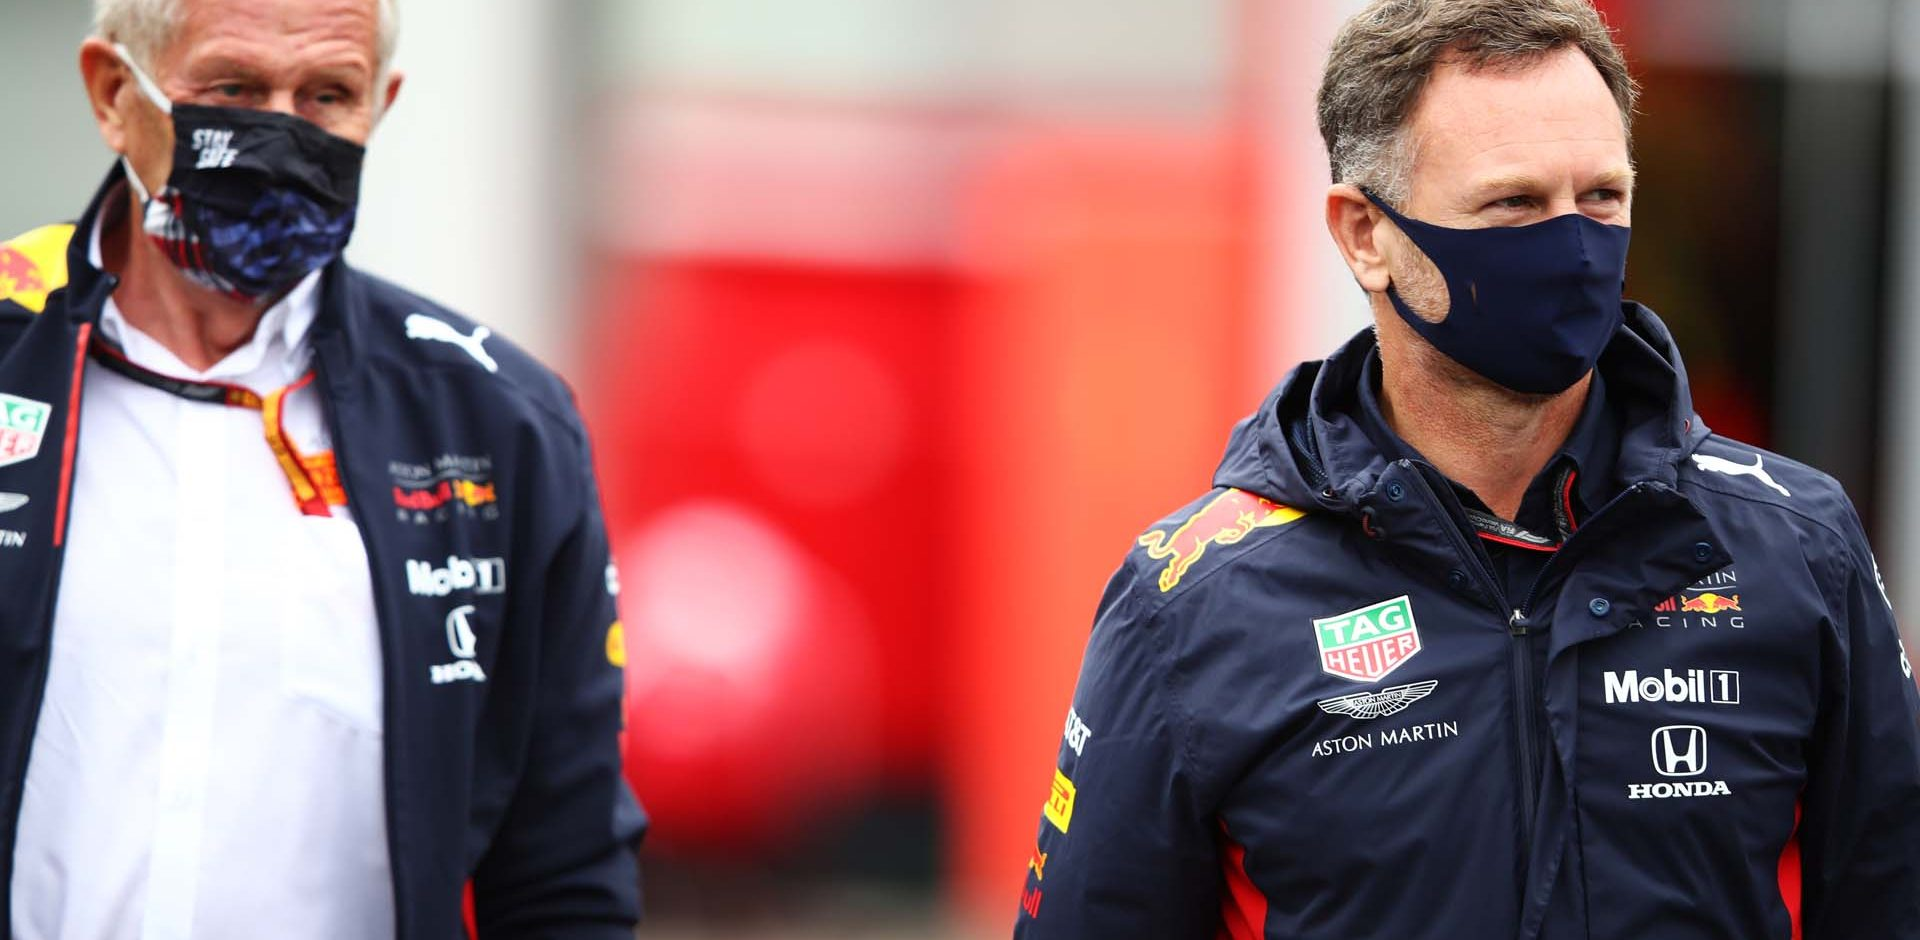 SPA, BELGIUM - AUGUST 28: Red Bull Racing Team Principal Christian Horner and Red Bull Racing Team Consultant Dr Helmut Marko arrive in the Paddock before practice for the F1 Grand Prix of Belgium at Circuit de Spa-Francorchamps on August 28, 2020 in Spa, Belgium. (Photo by Mark Thompson/Getty Images,)